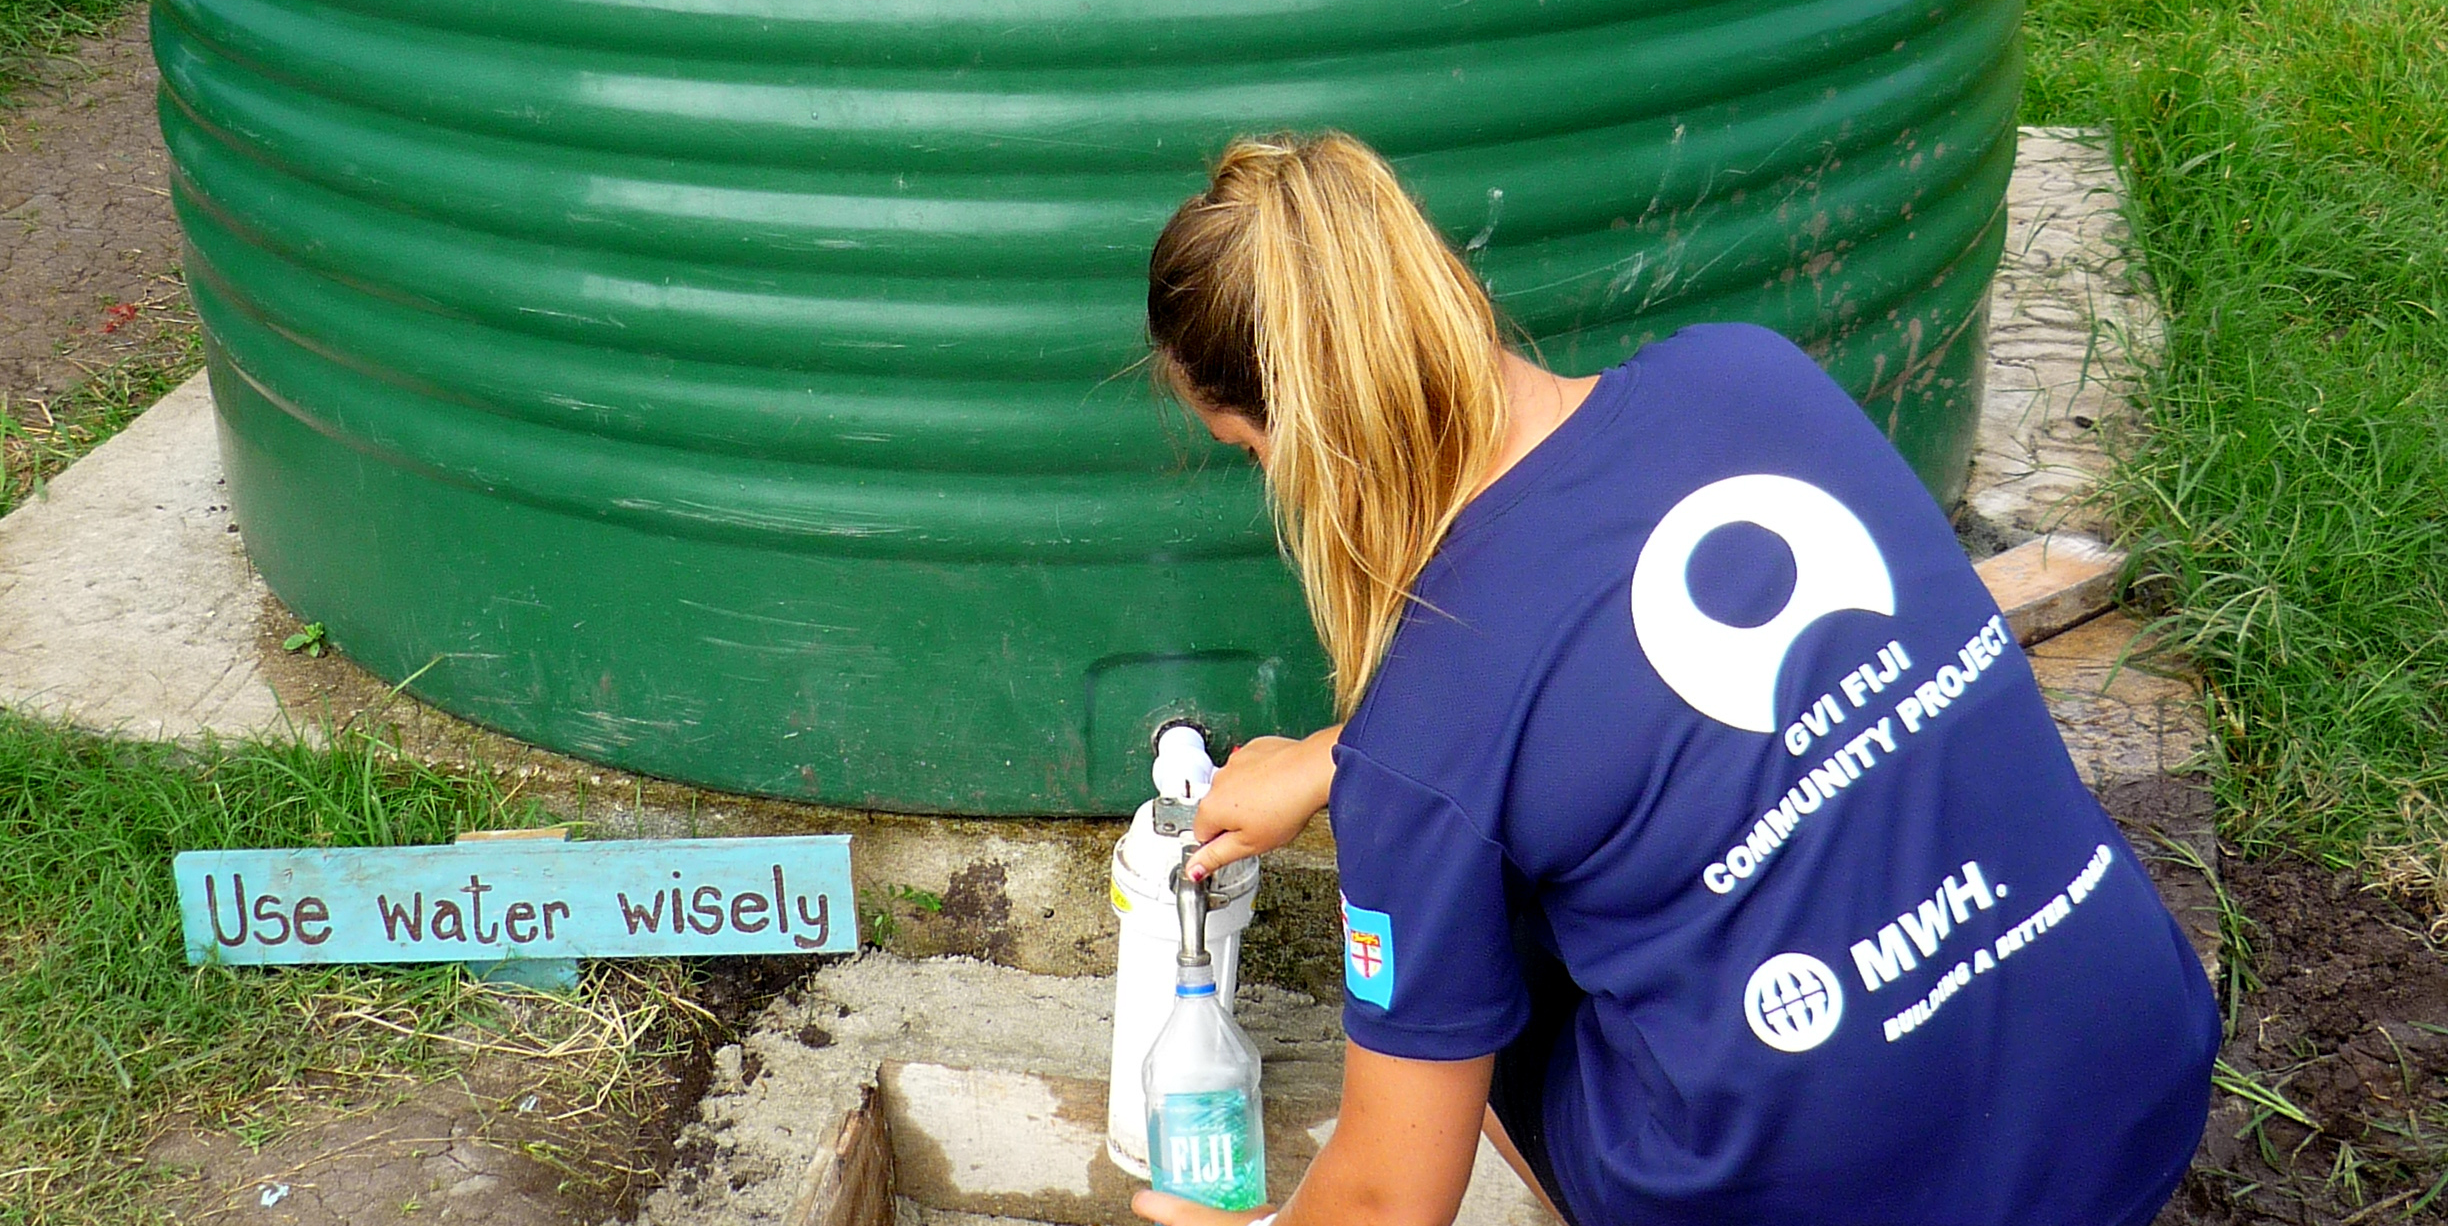 A participant collects water from a rainwater collection point in Dawasamu, Fiji as part of their community development internship.